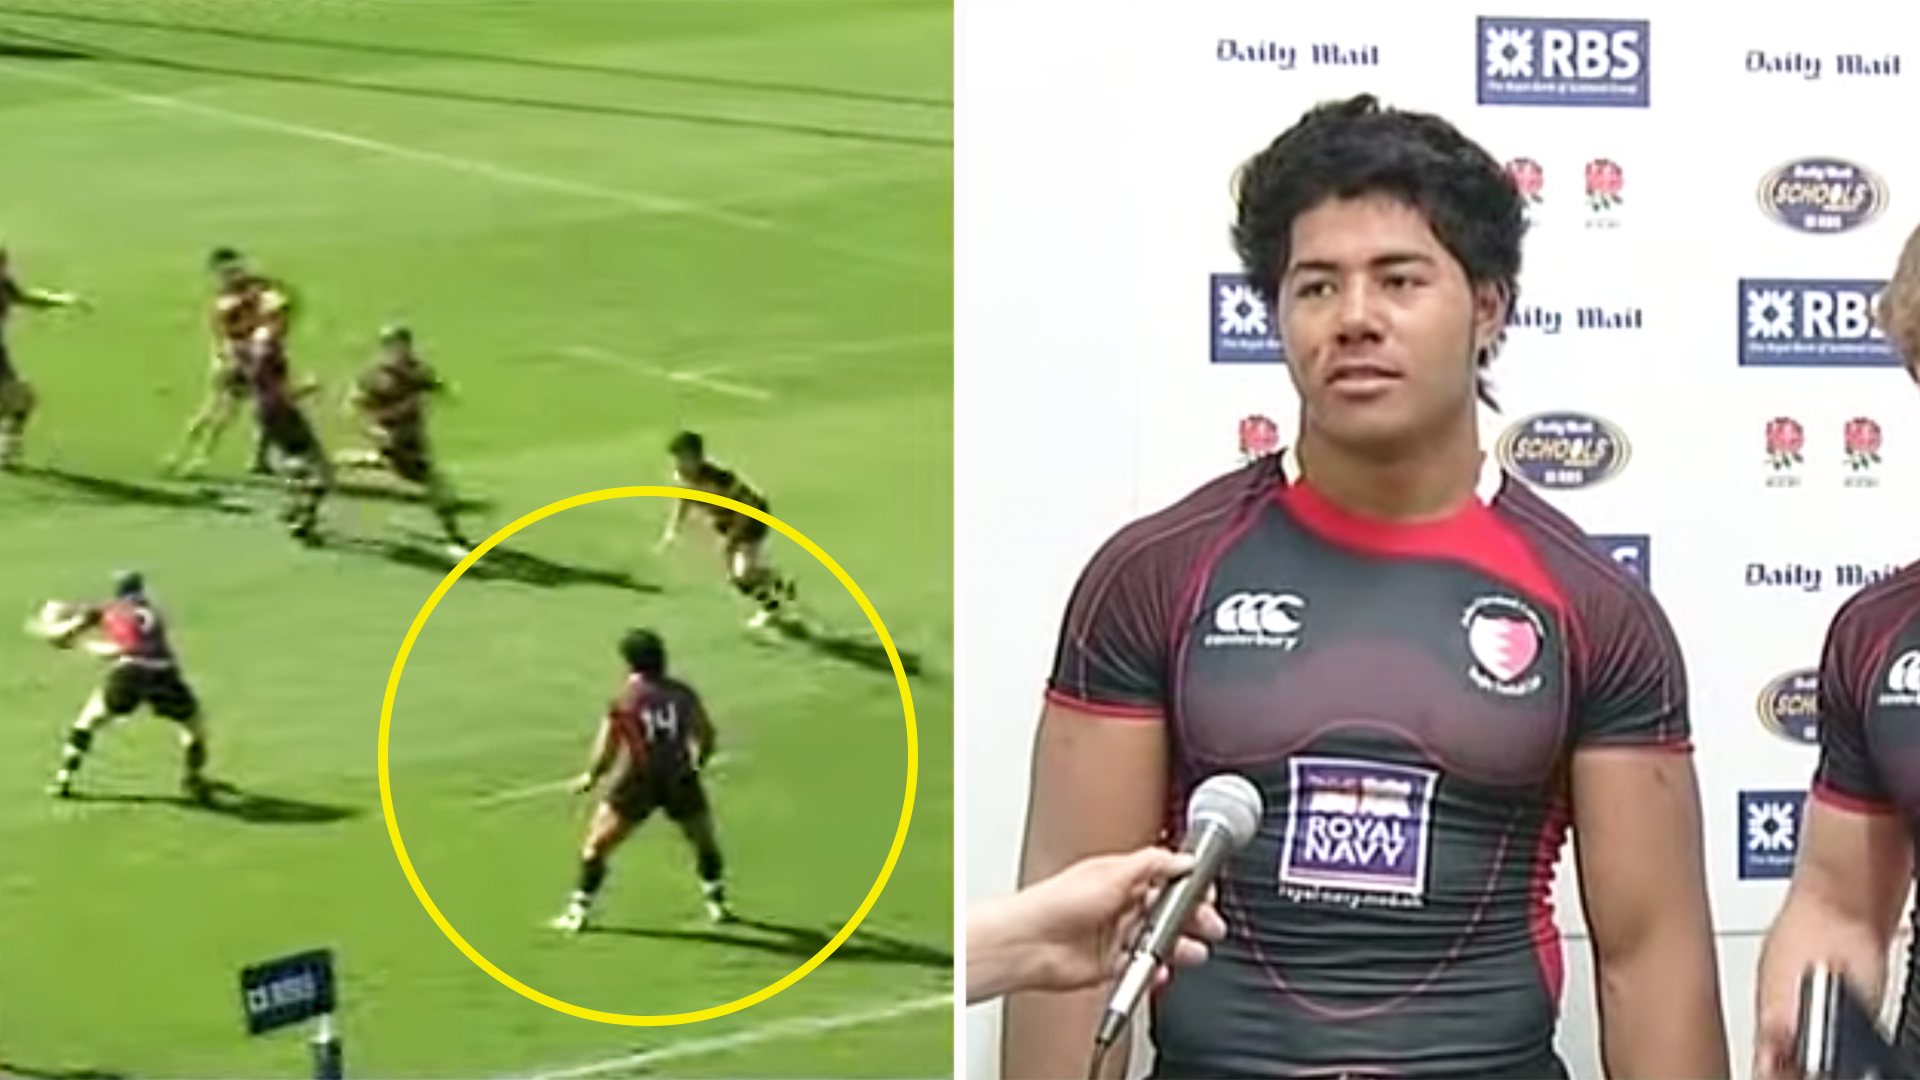 Manu Tuilagi should never have been allowed to play schoolboy rugby